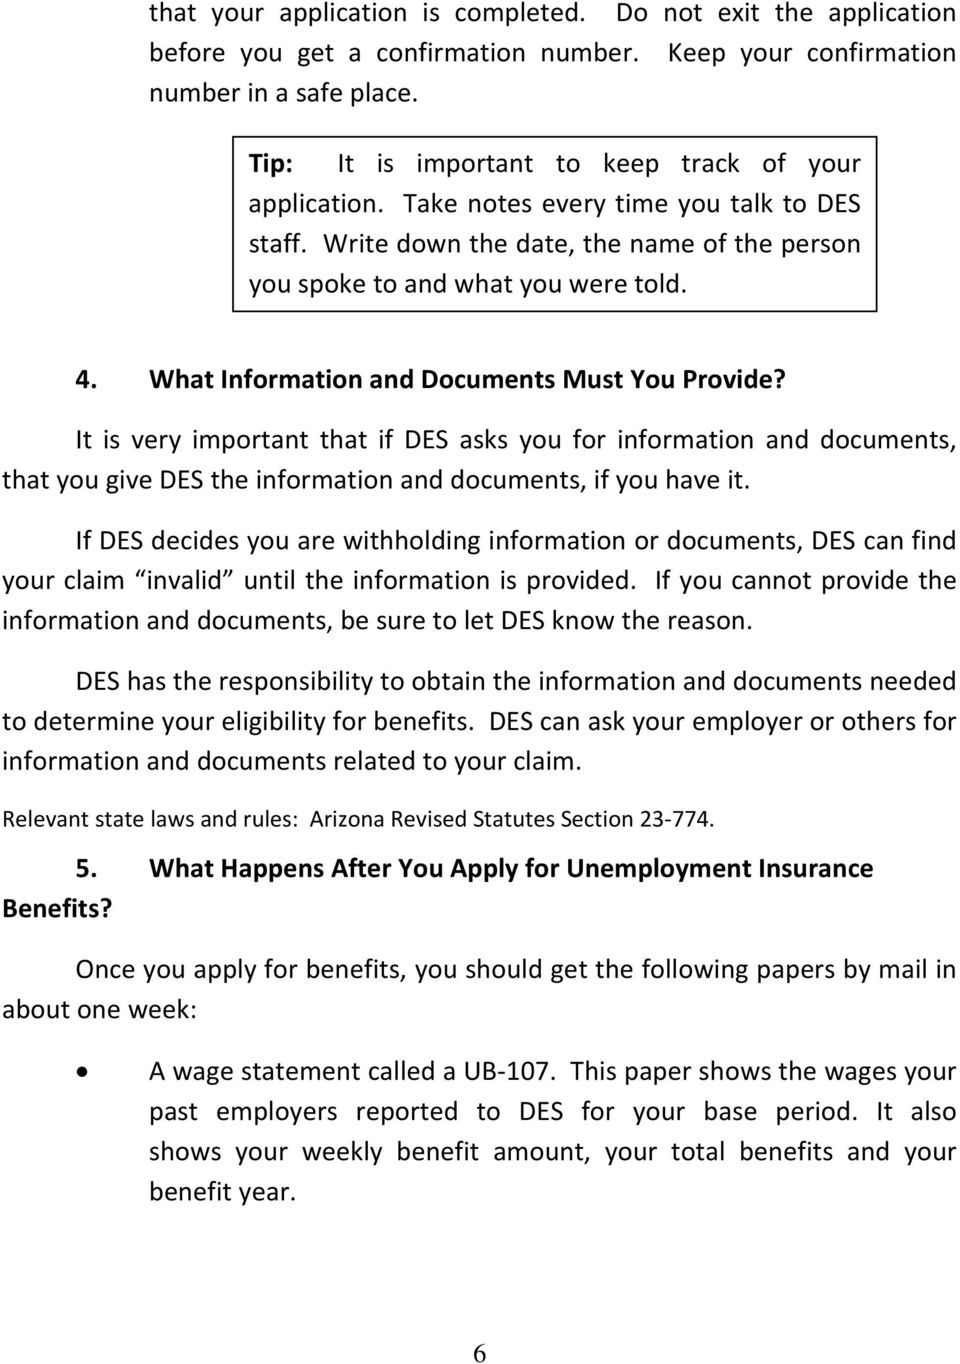 What Information and Documents Must You Provide? It is very important that if DES asks you for information and documents, that you give DES the information and documents, if you have it.